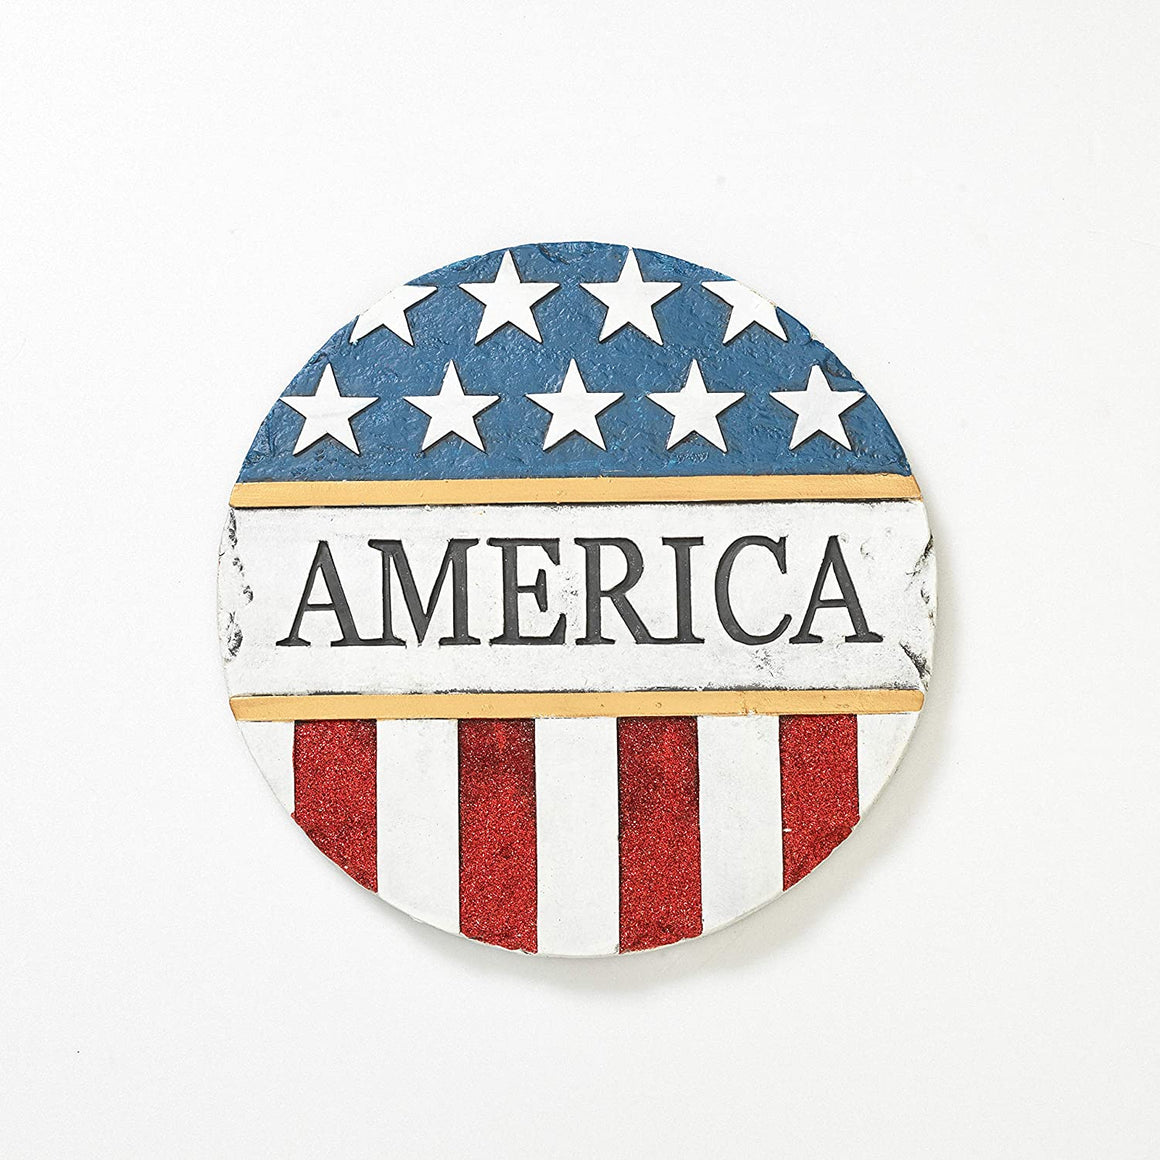 America Patriotic Round Garden Stepping Stone, 11.25 Inches Diameter